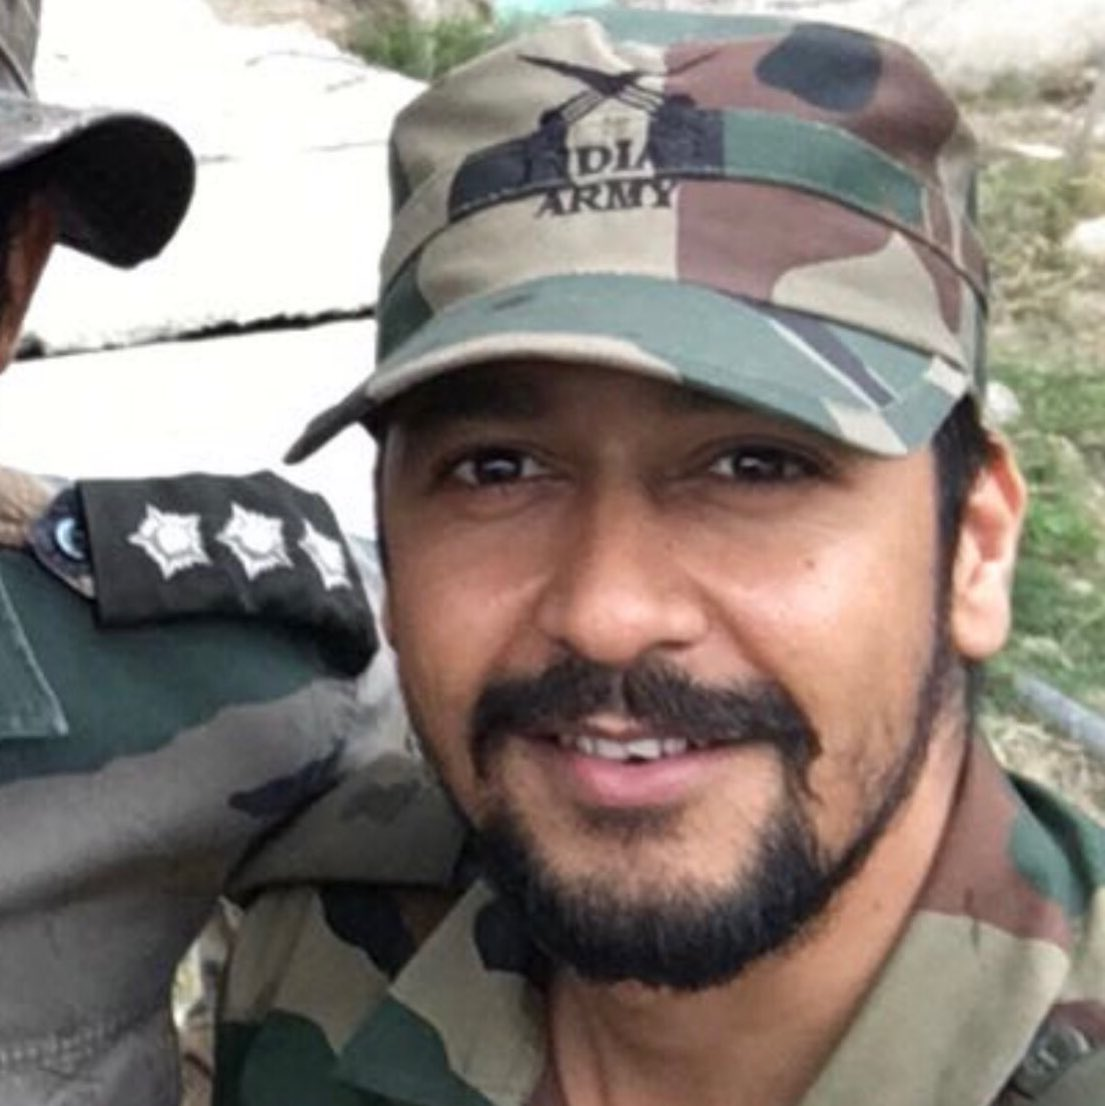 Major Vibhuti Dhoundiyal, the young officer killed in today's encounter with Jaish terrorists in Pinglana, Pulwama. The other three are Havildar Sheo Ram, Sepoy Ajay Kumar and Sepoy Hari Singh. They fell to bullets when the cordon was being laid. What a terrible, terrible loss.